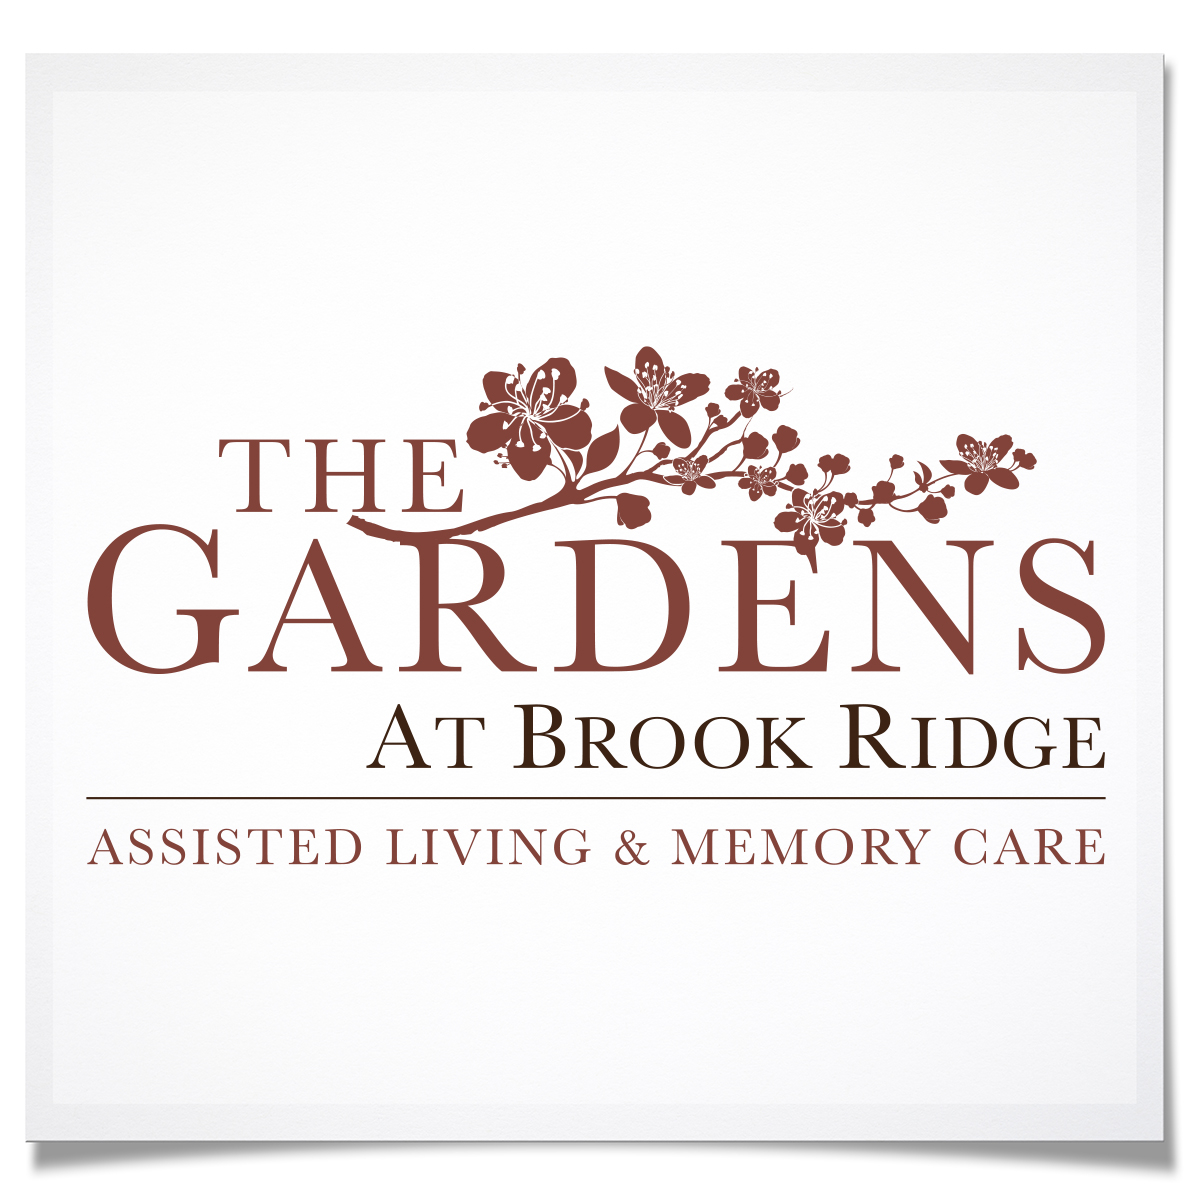 The Gardens at Brook Ridge Assisted Living & Memory Care